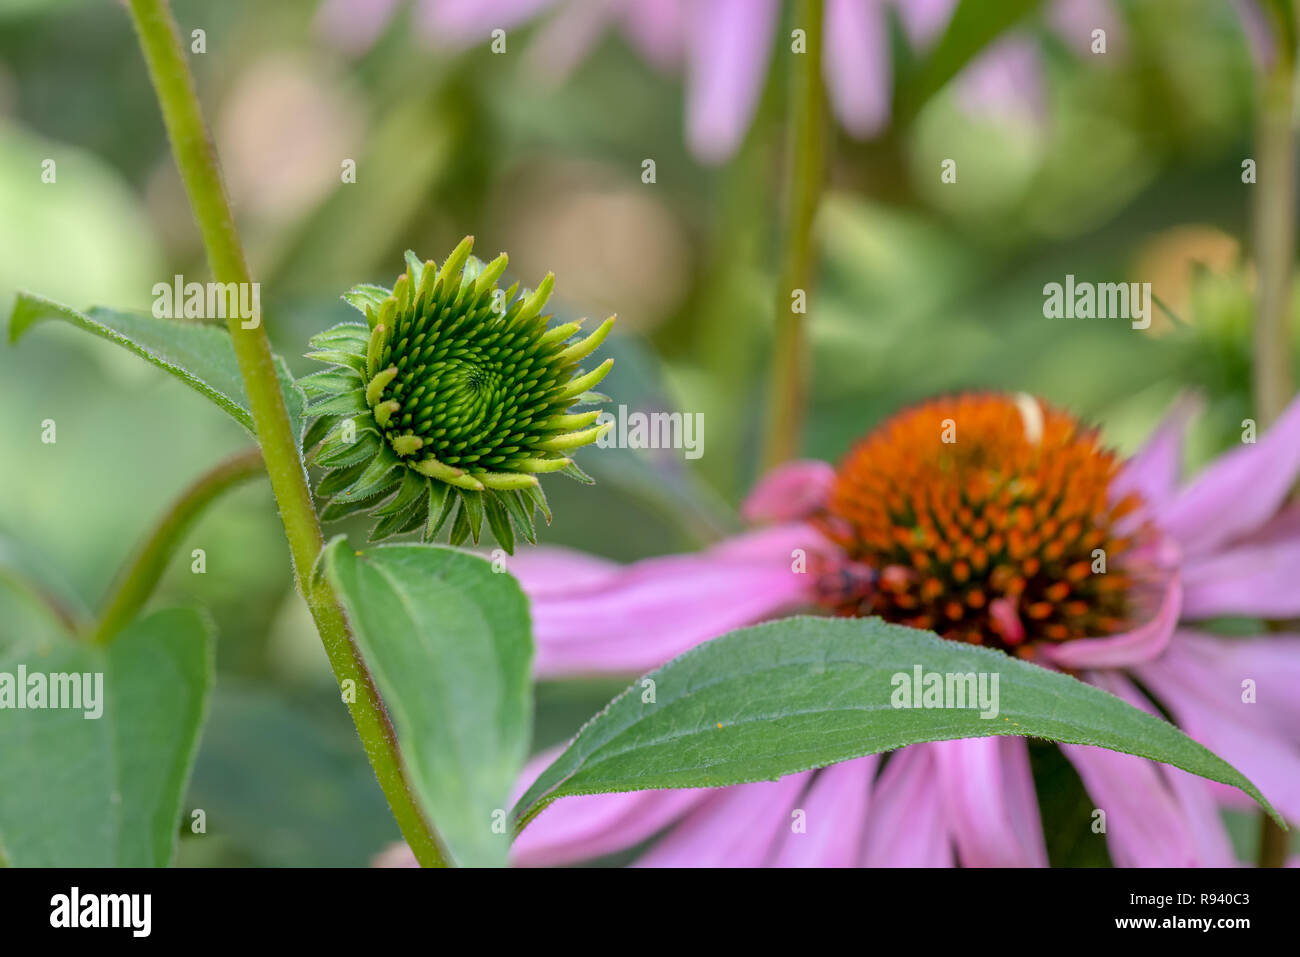 Fine art still life outdoor floral macro of an evolving single isolated young coneflower/echinacea blossom,natural blurred background,sunny summer - Stock Image